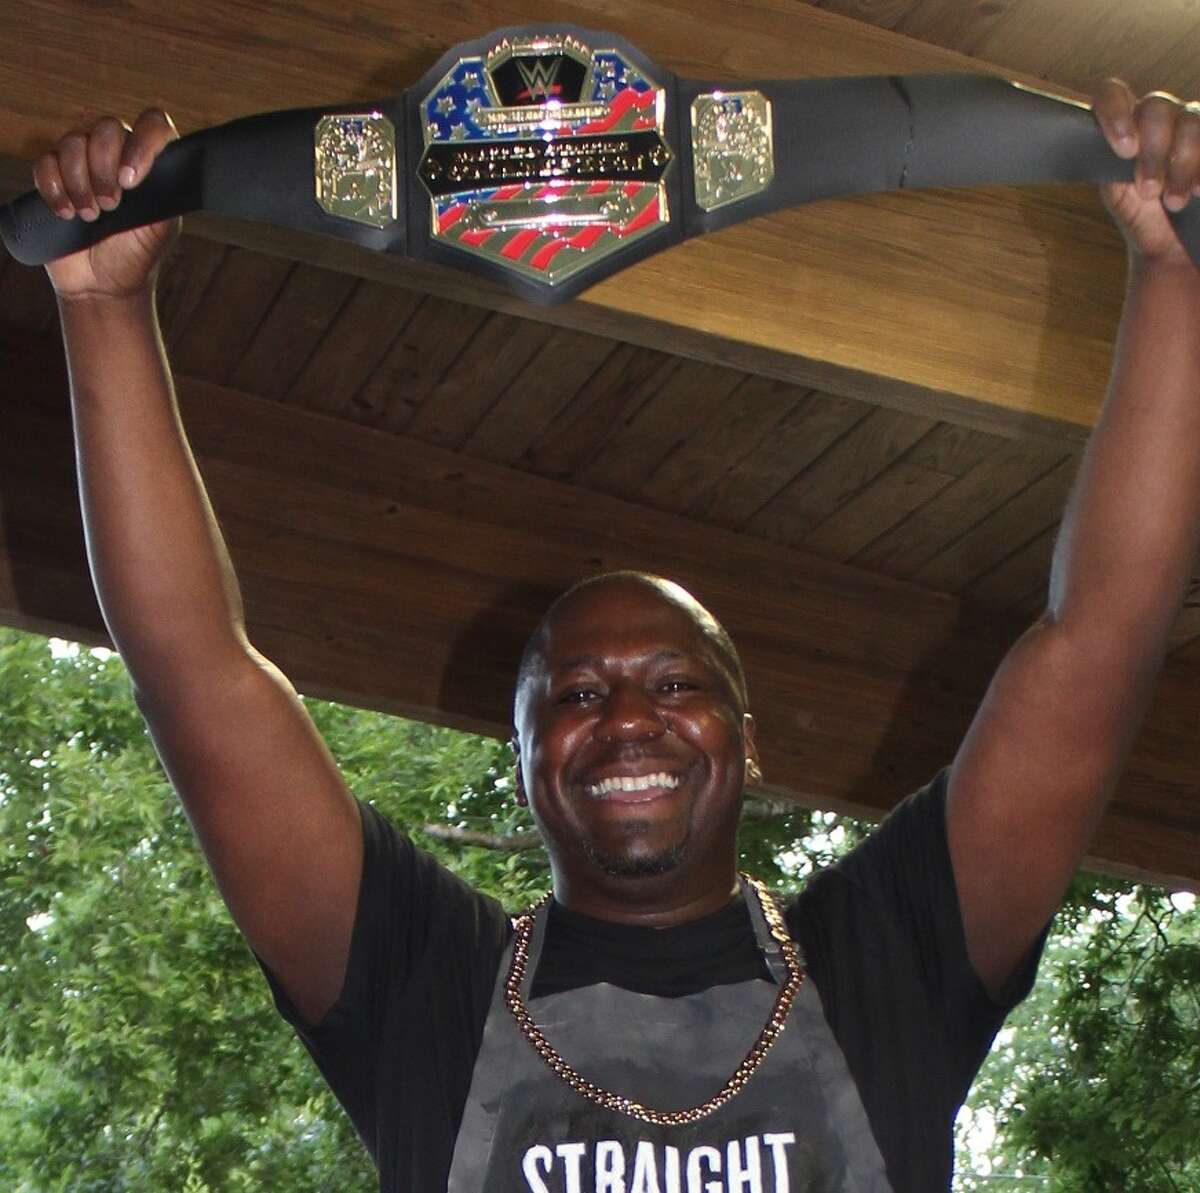 Derrick Taylor, manager of the Cypress Branch of the Associated Credit Union of Texas celebrates his win in the company's shrimp boil contest.